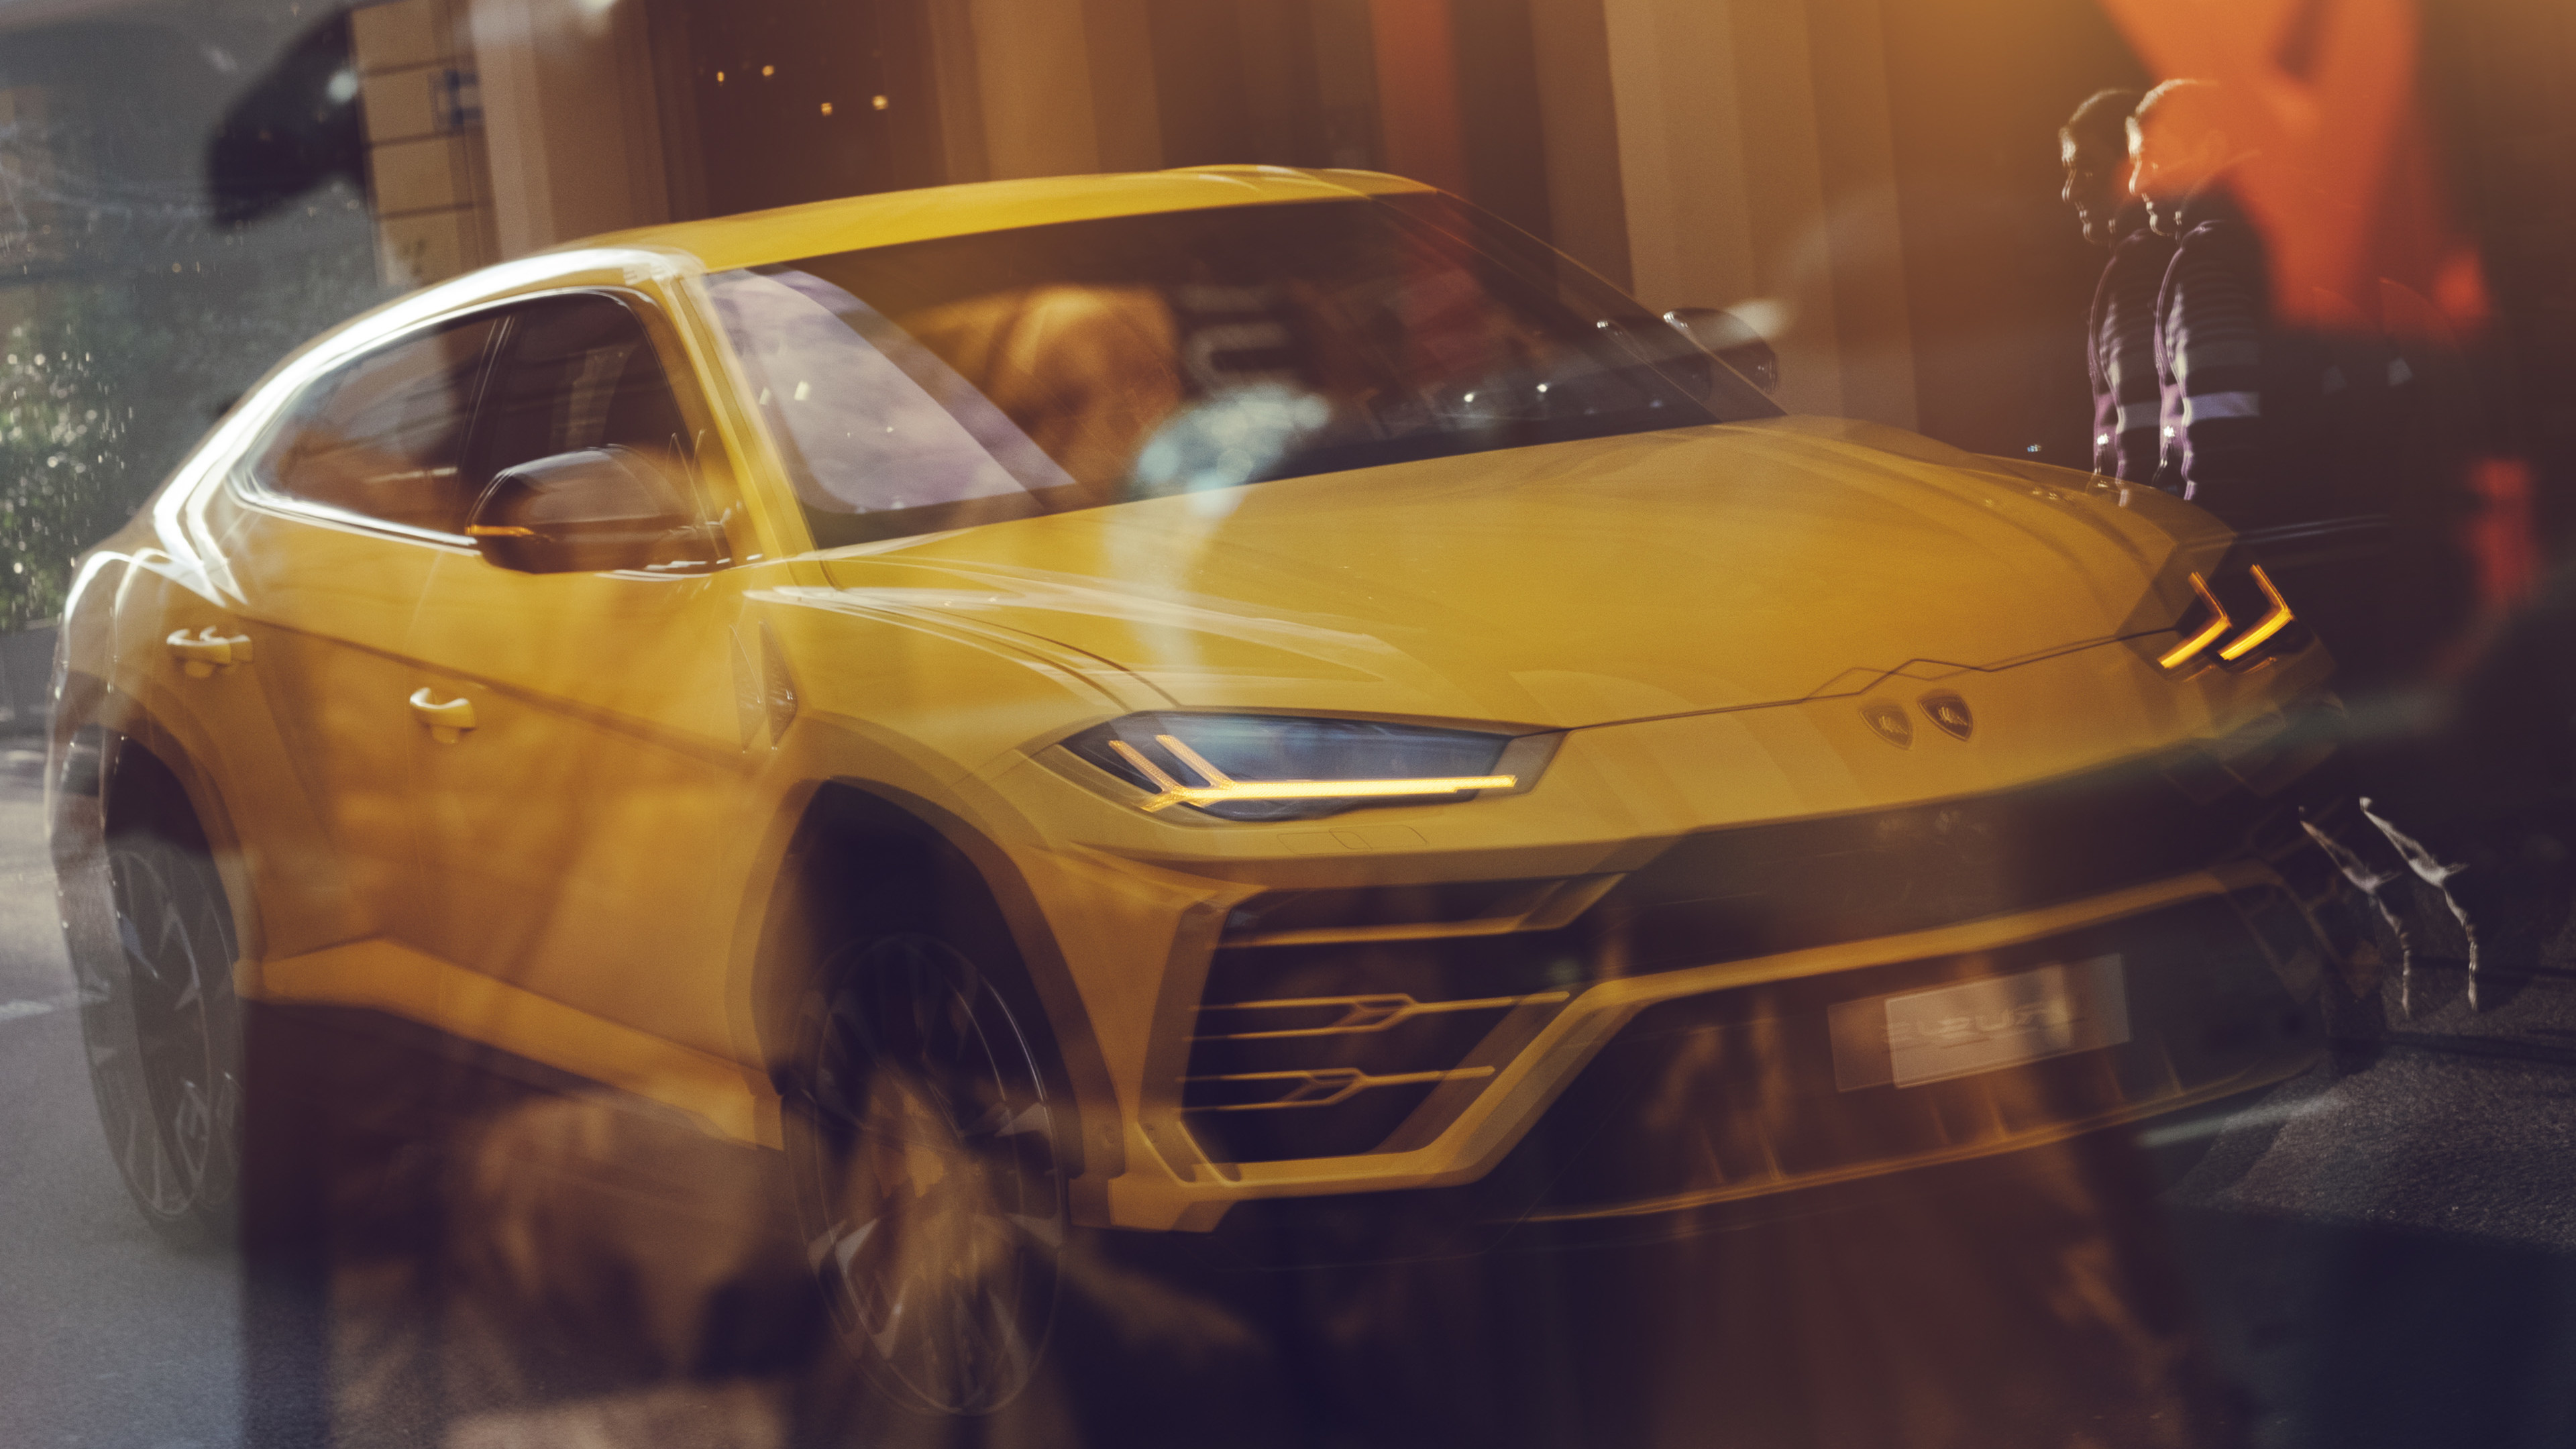 Wallpaper 4k 2019 Lamborghini Urus 4k 2019 Cars Wallpapers 4k